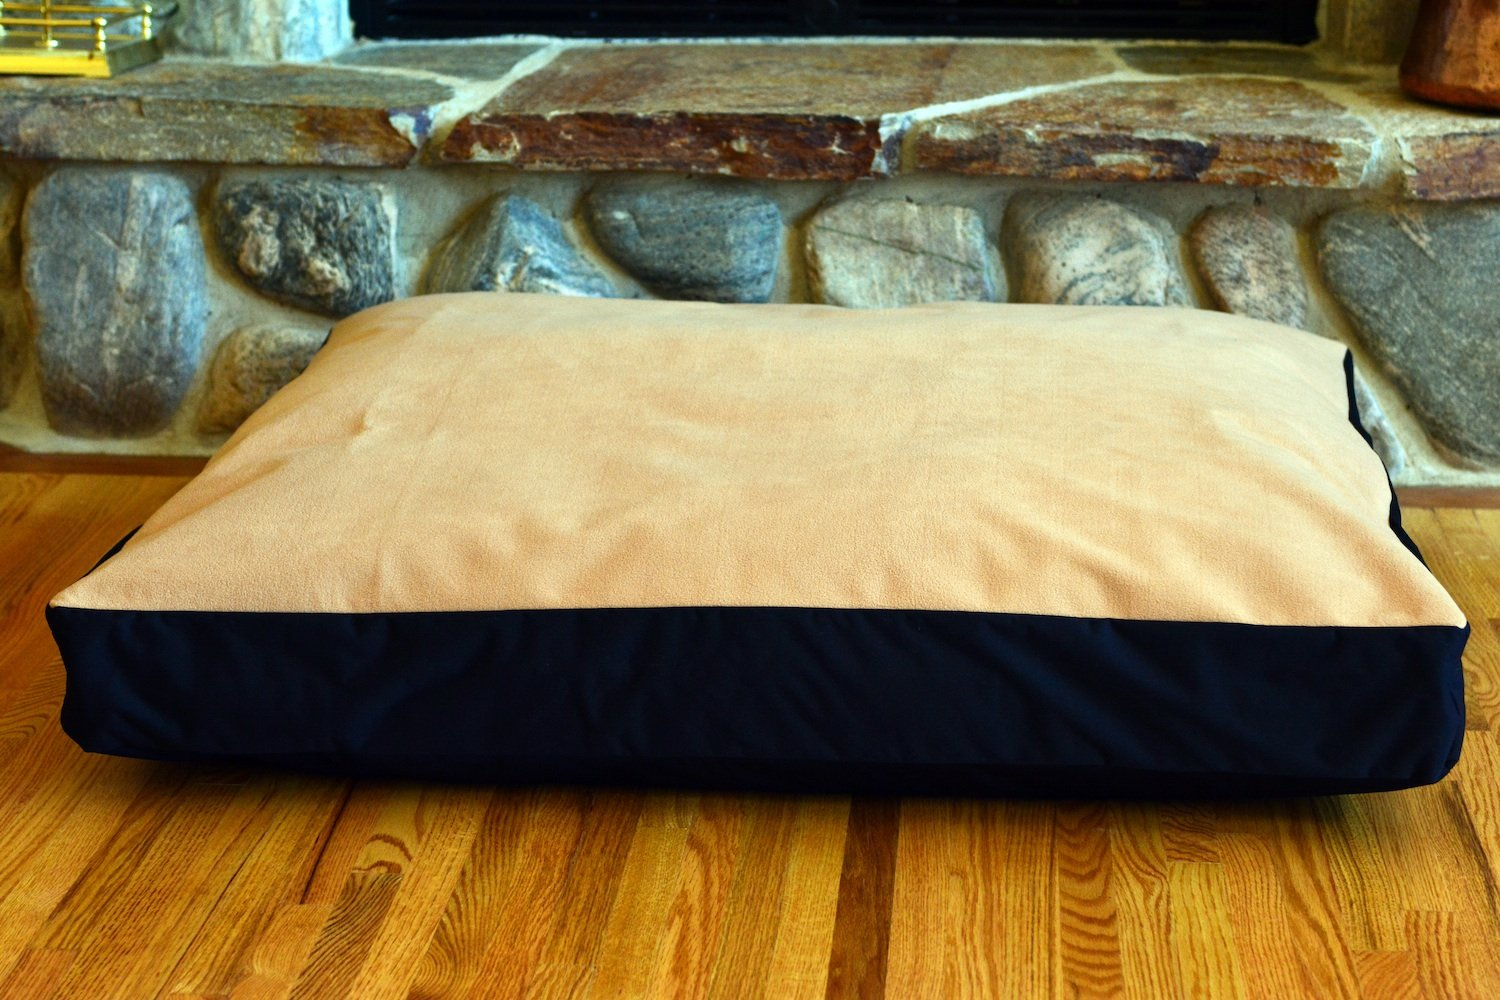 """100% Waterproof FLEECE DIY """"Design-It-Yourself"""" Dog Bed Cover; Washable Hypoallergenic Made in USA (COVER ONLY)"""